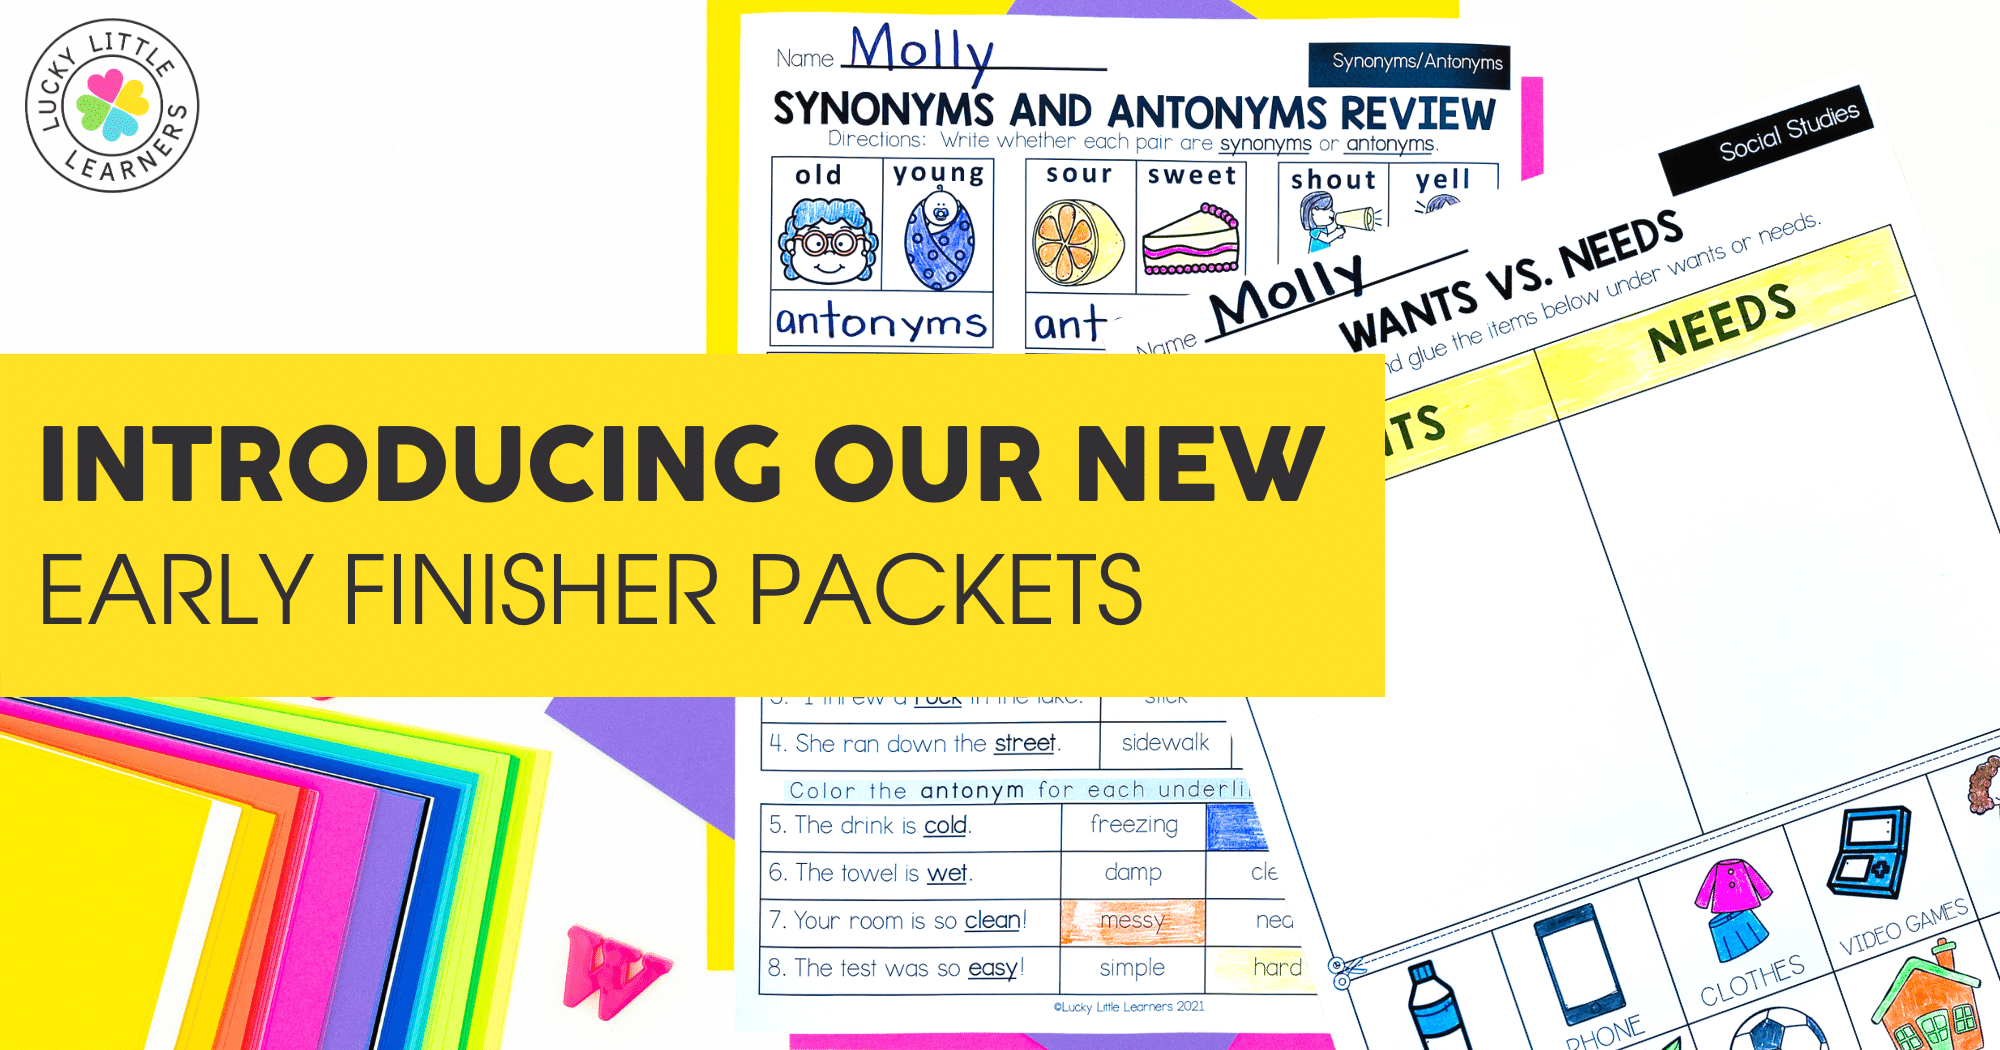 Introducing Our New Early Finisher Packets